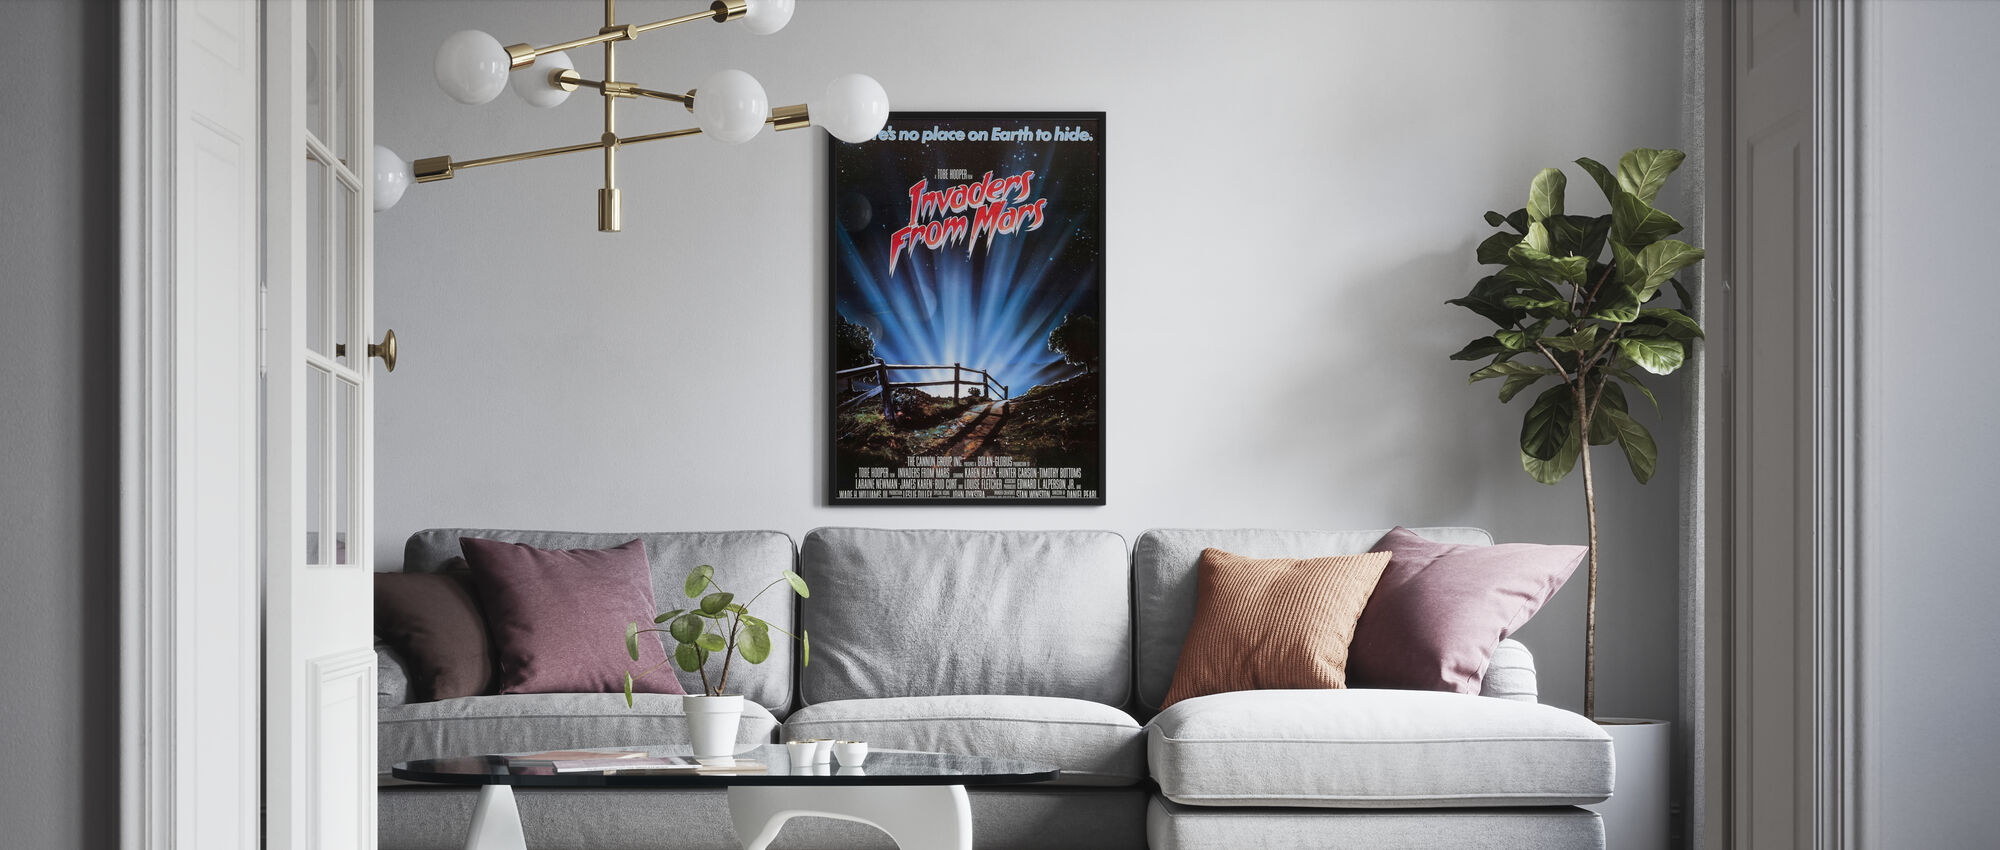 Invaders from Mars - Poster - Living Room